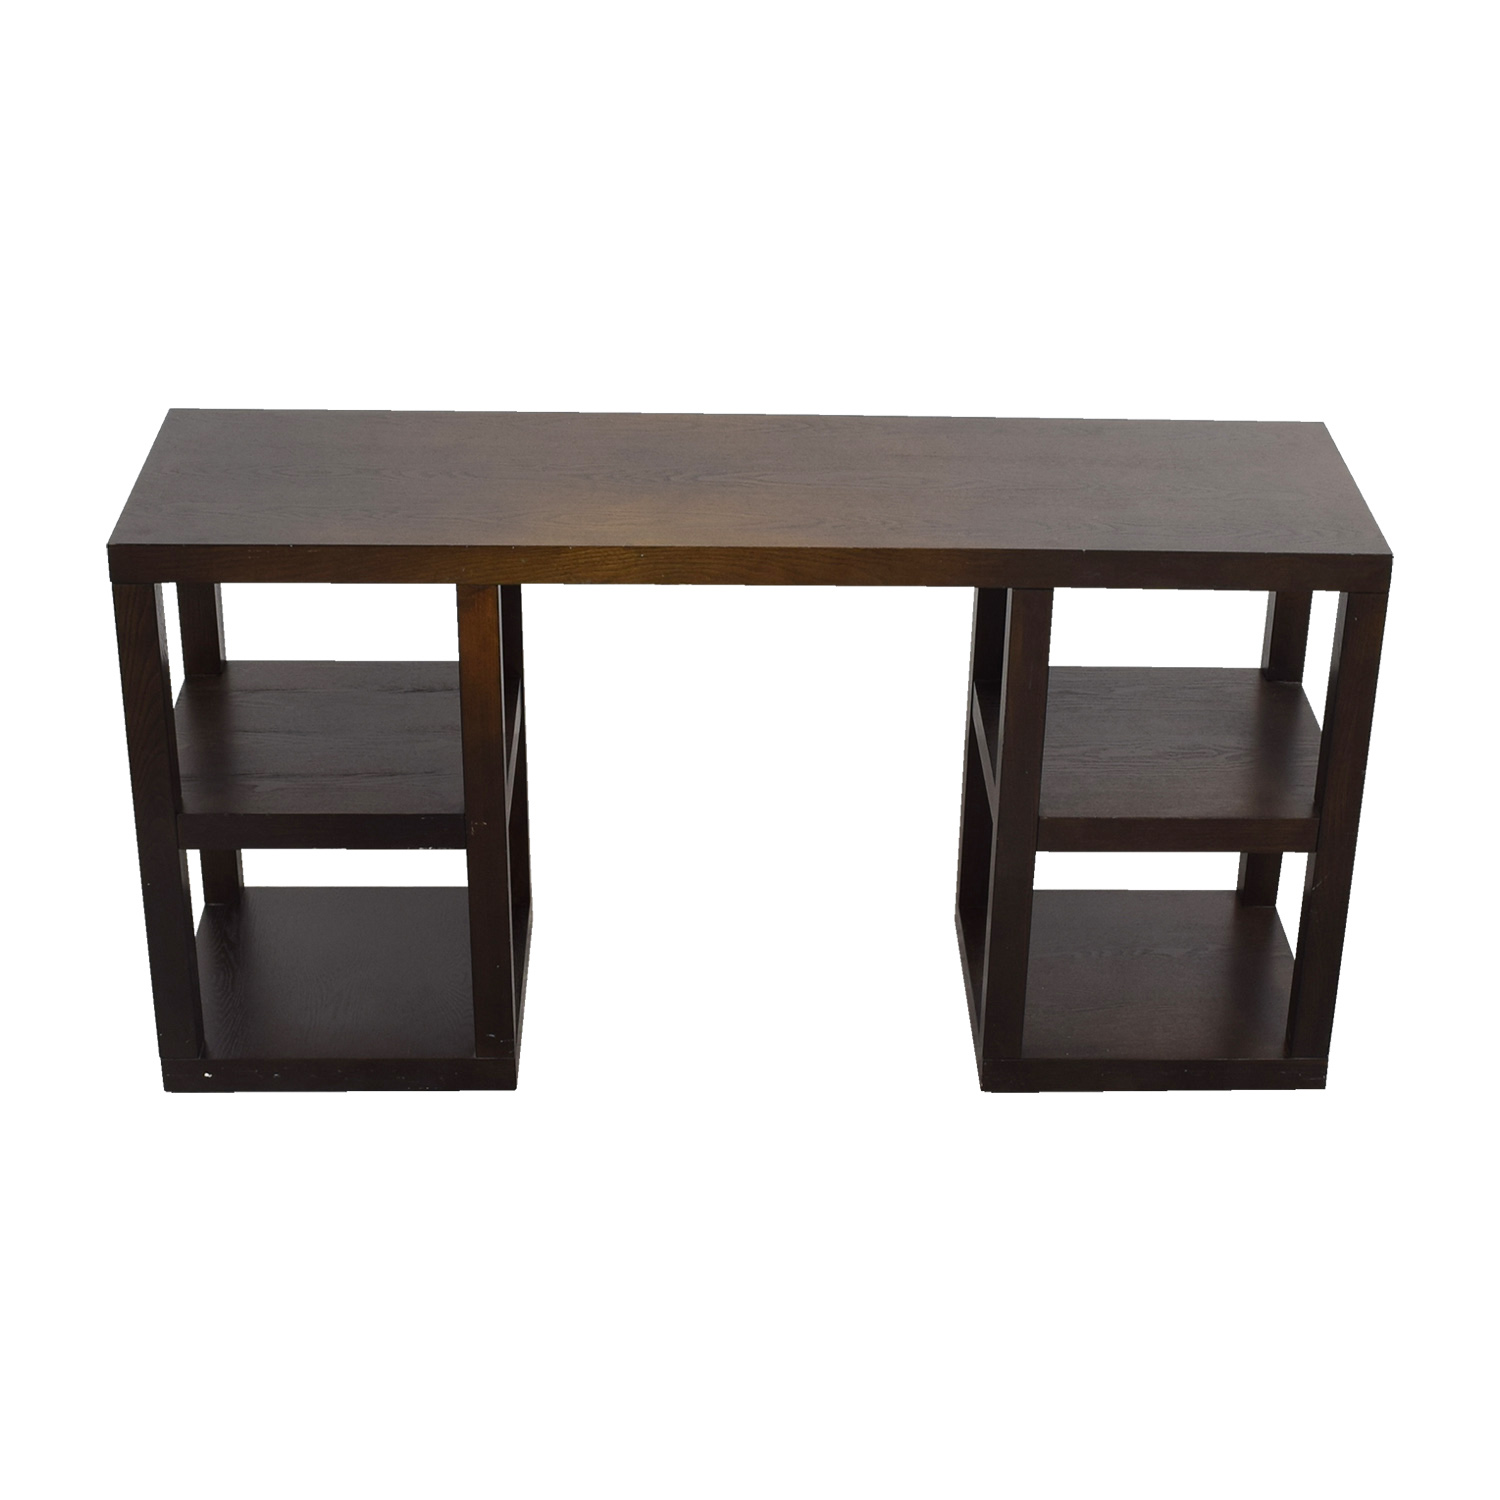 West Elm West Elm Desk with Shelves second hand